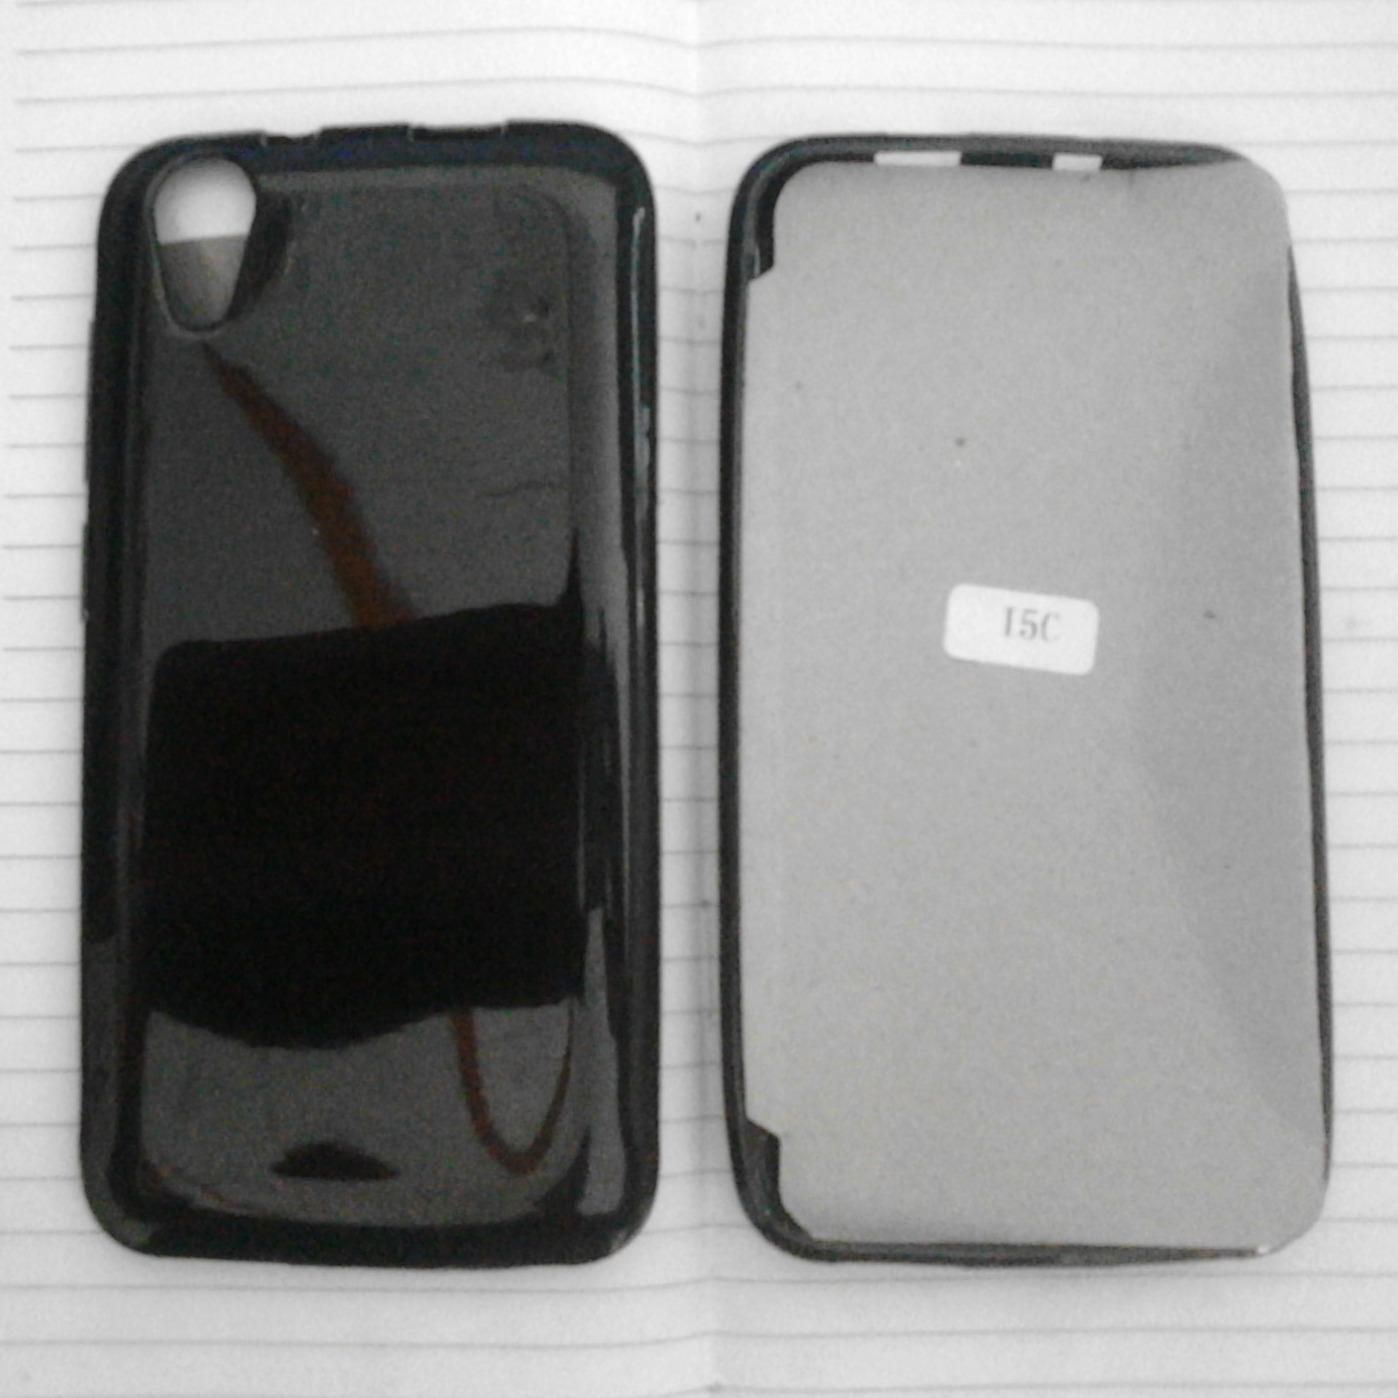 Softcase Advan i5c Softcover Kondom Silicon Case Silikon Jelly Case Adven Adfan i 5 c